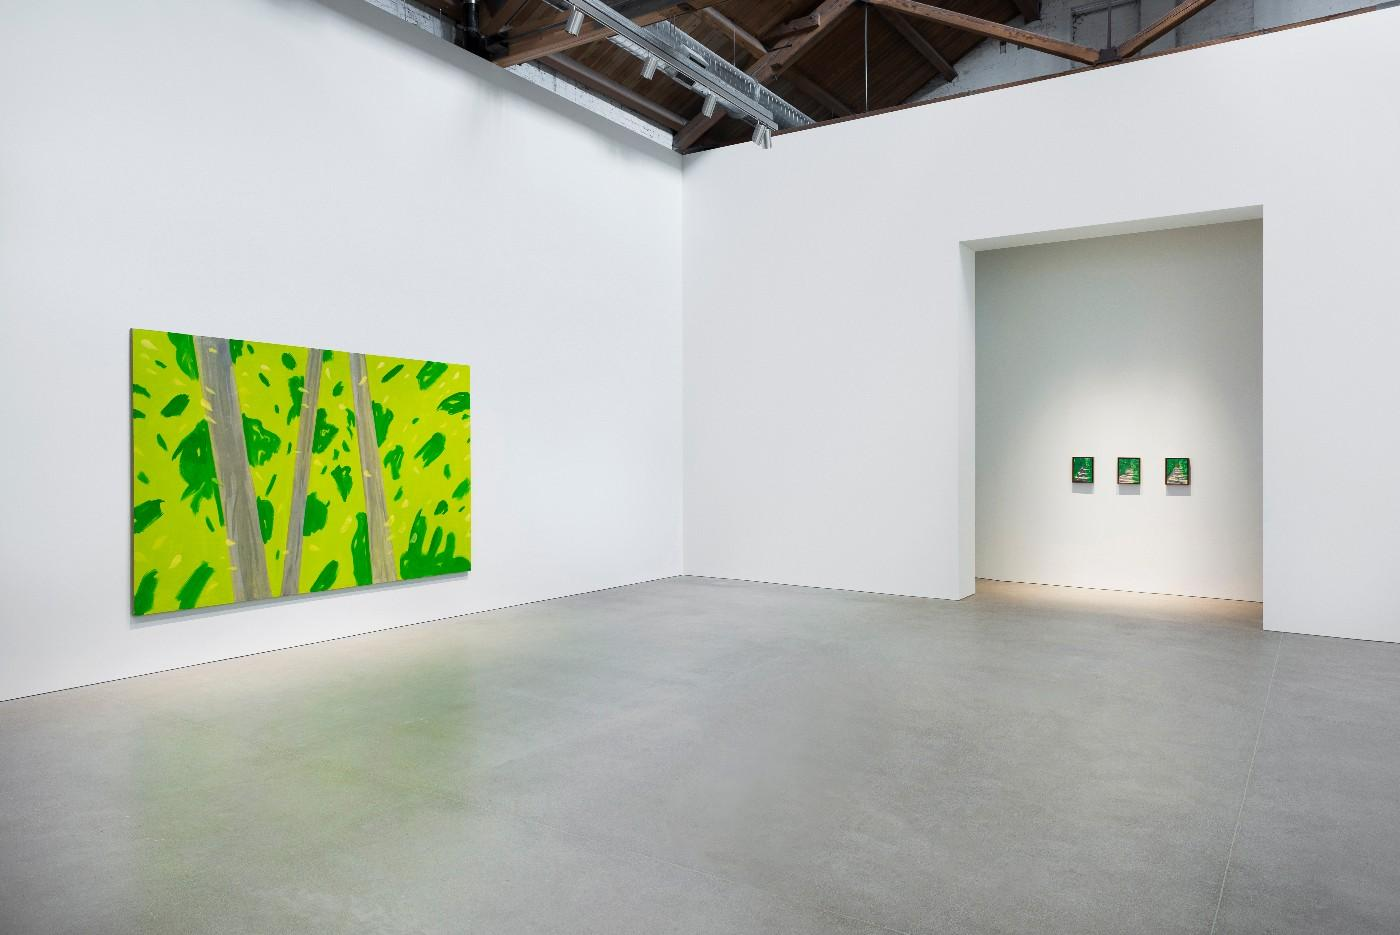 Alex Katz: Grass and Trees